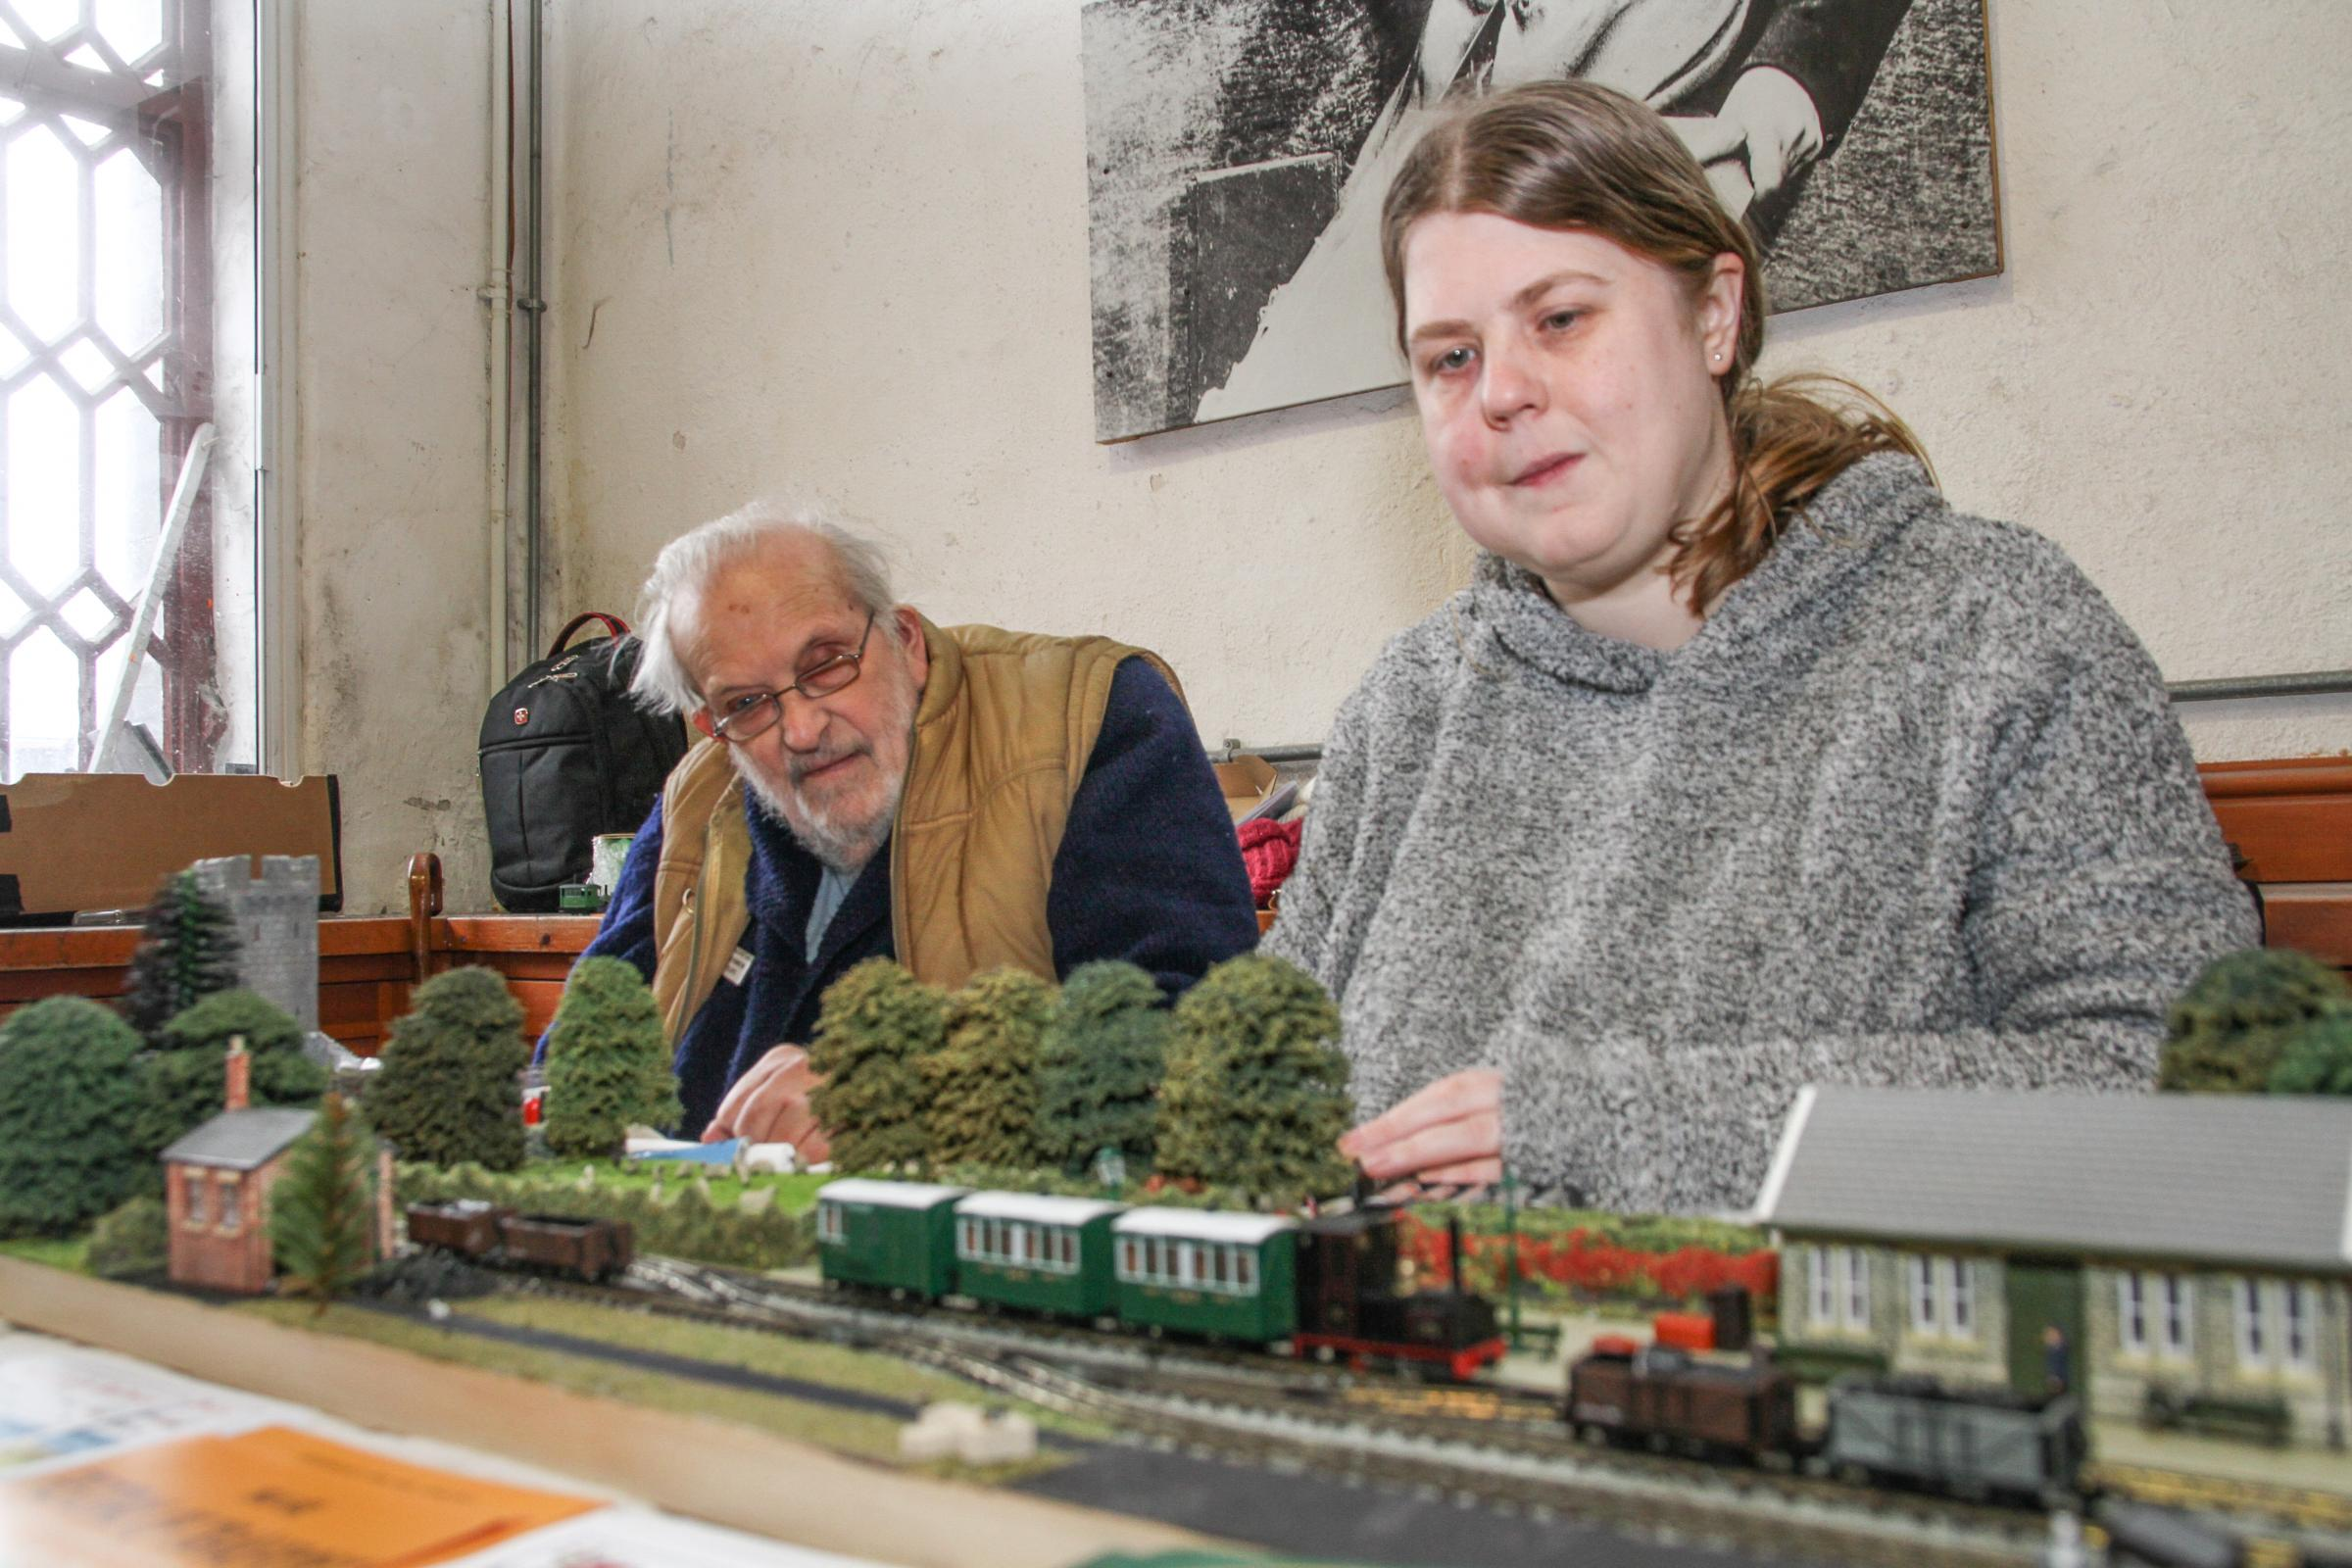 Paul Tower and Joanna Vincent of Porthmadog, with their display. Paul is the former editor of Model Railway magazine and has been exhibiting since 1967. PICTURE: Kerry Roberts.